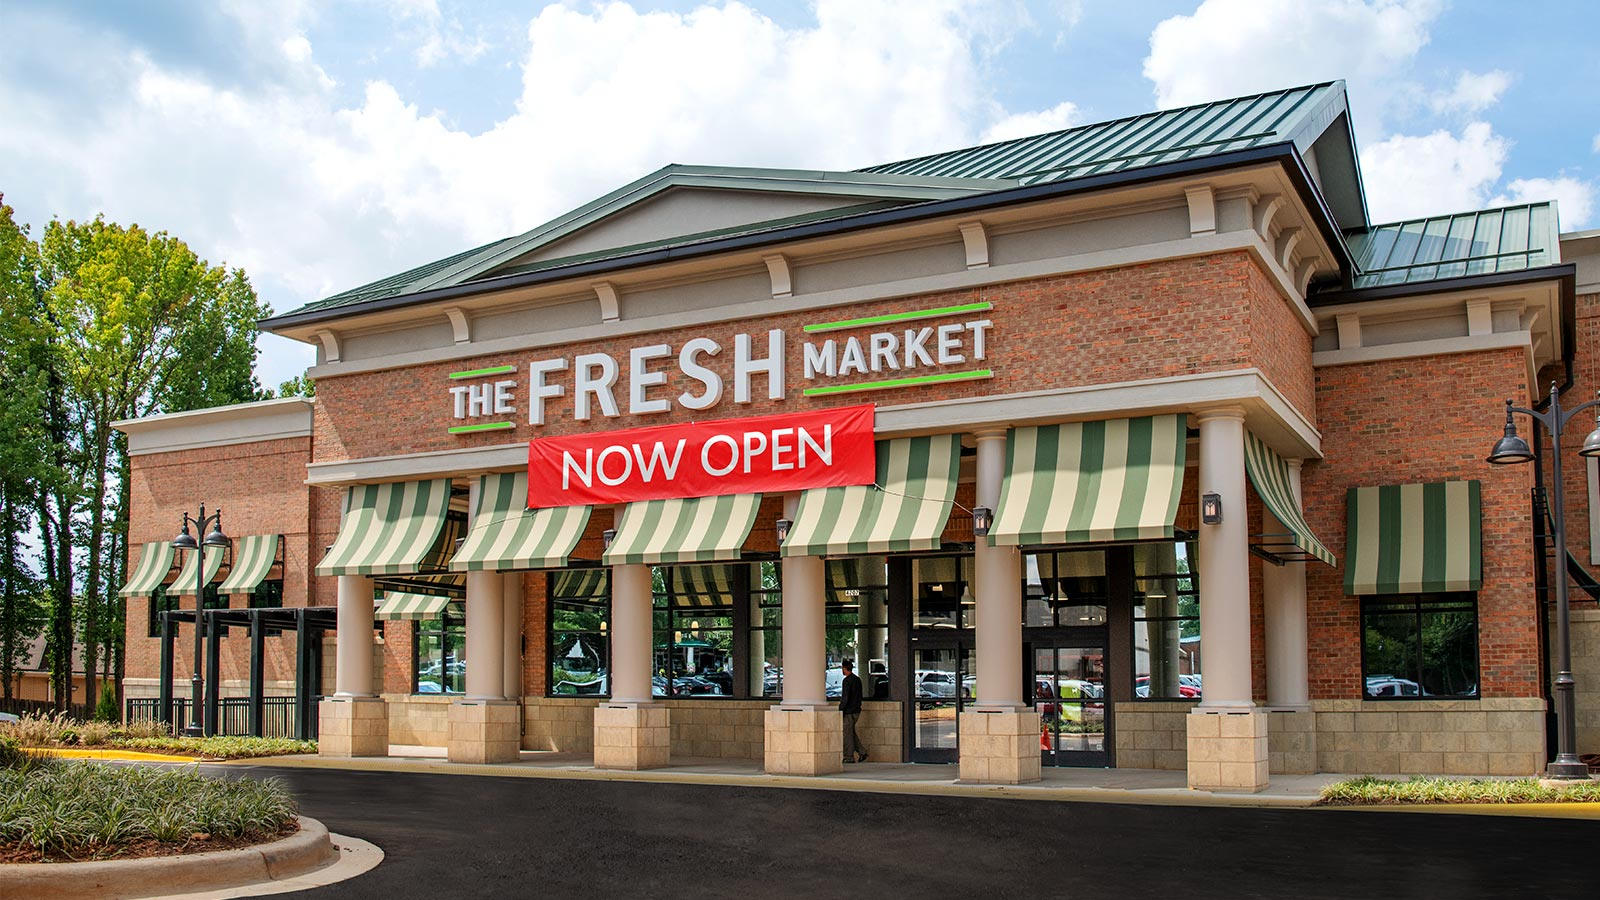 The Fresh Market new store location at Strawberry Hill in Charlotte NC